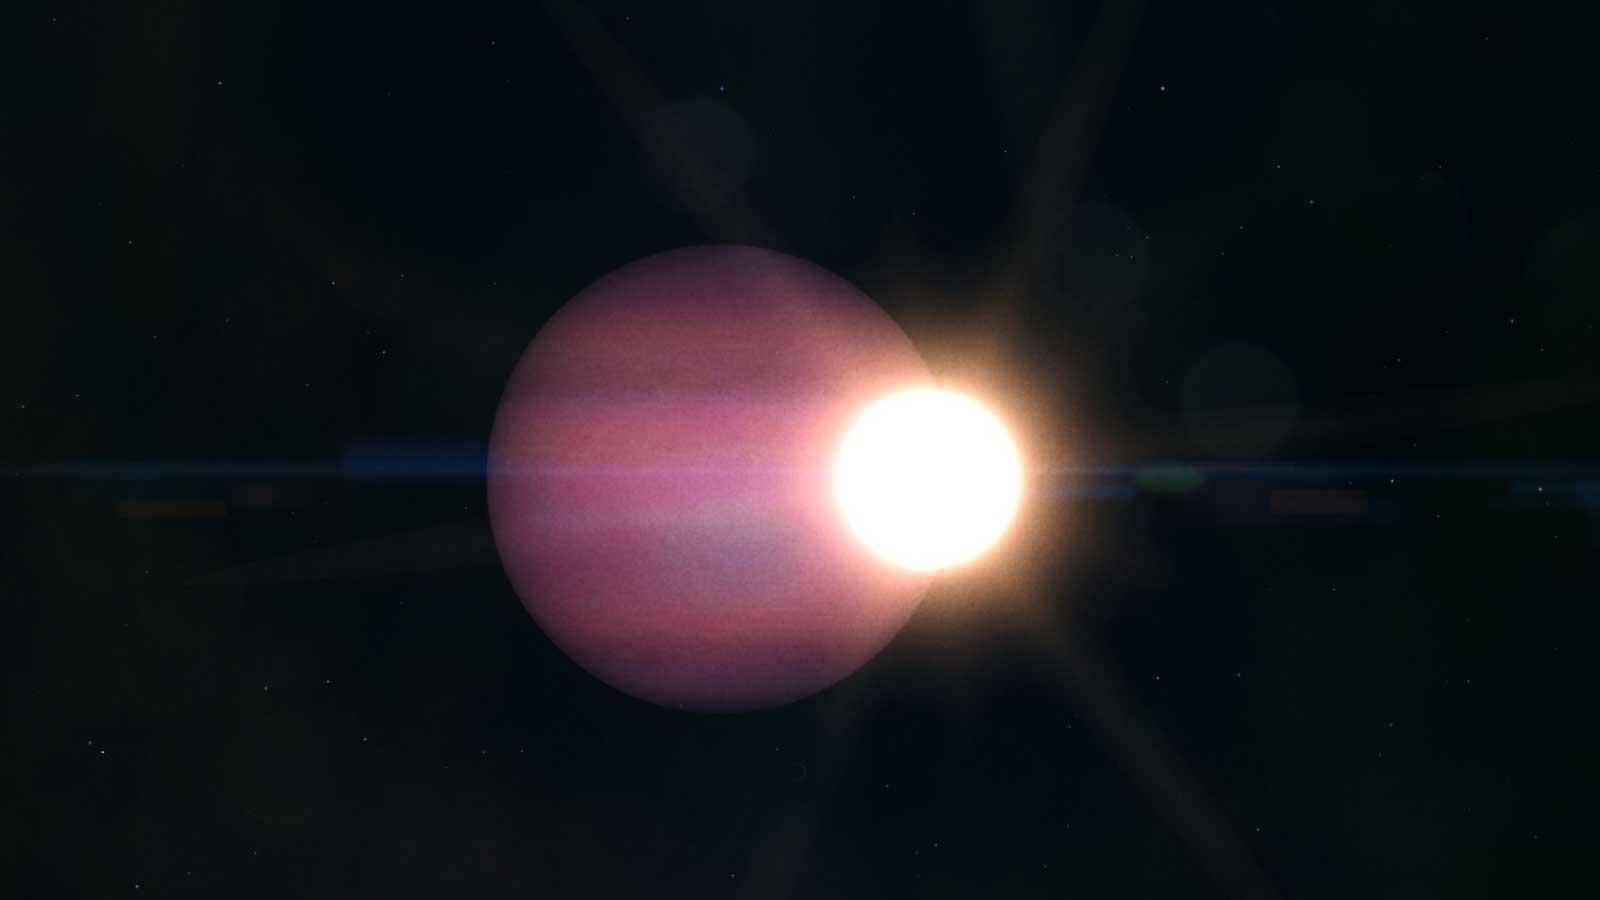 A large pink exoplanet is seen right next to a much smaller star with white light in an illustration.